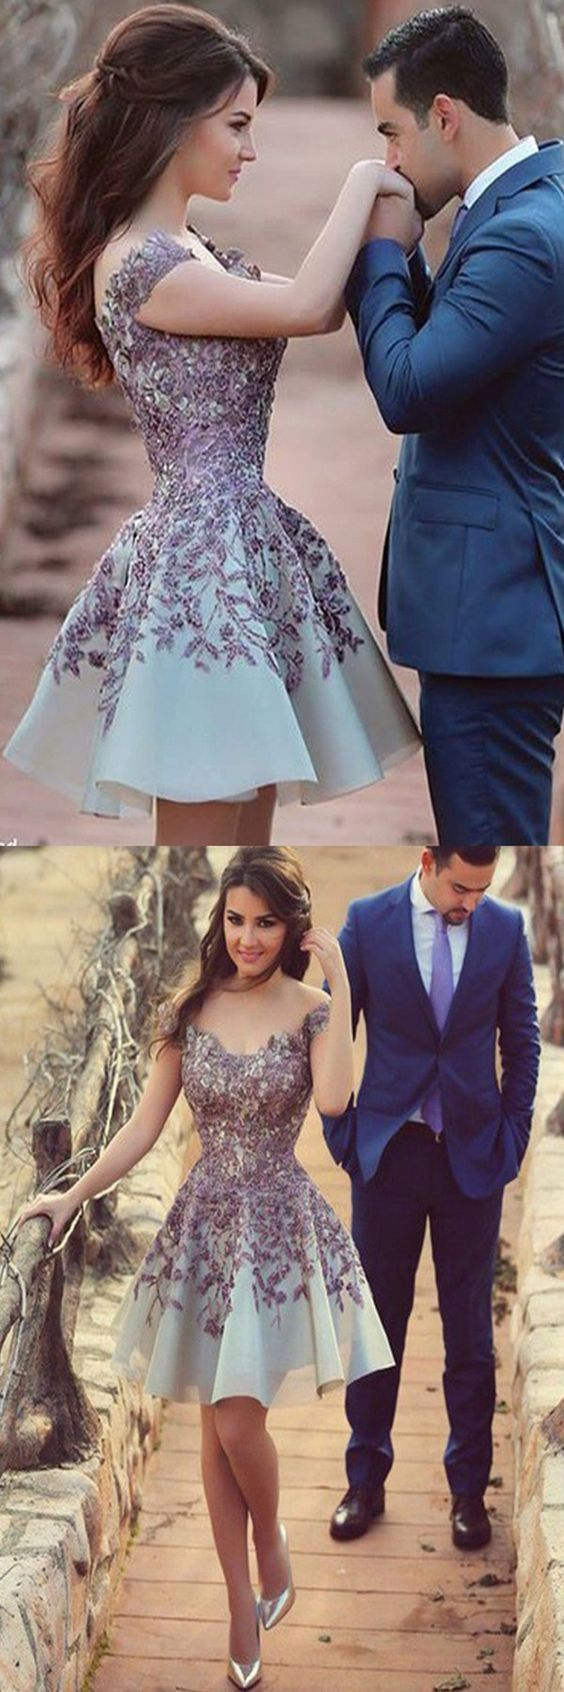 Homecoming Dress,lace Homecoming Dresses,Ball Gown Homecoming Gowns,Cute Party